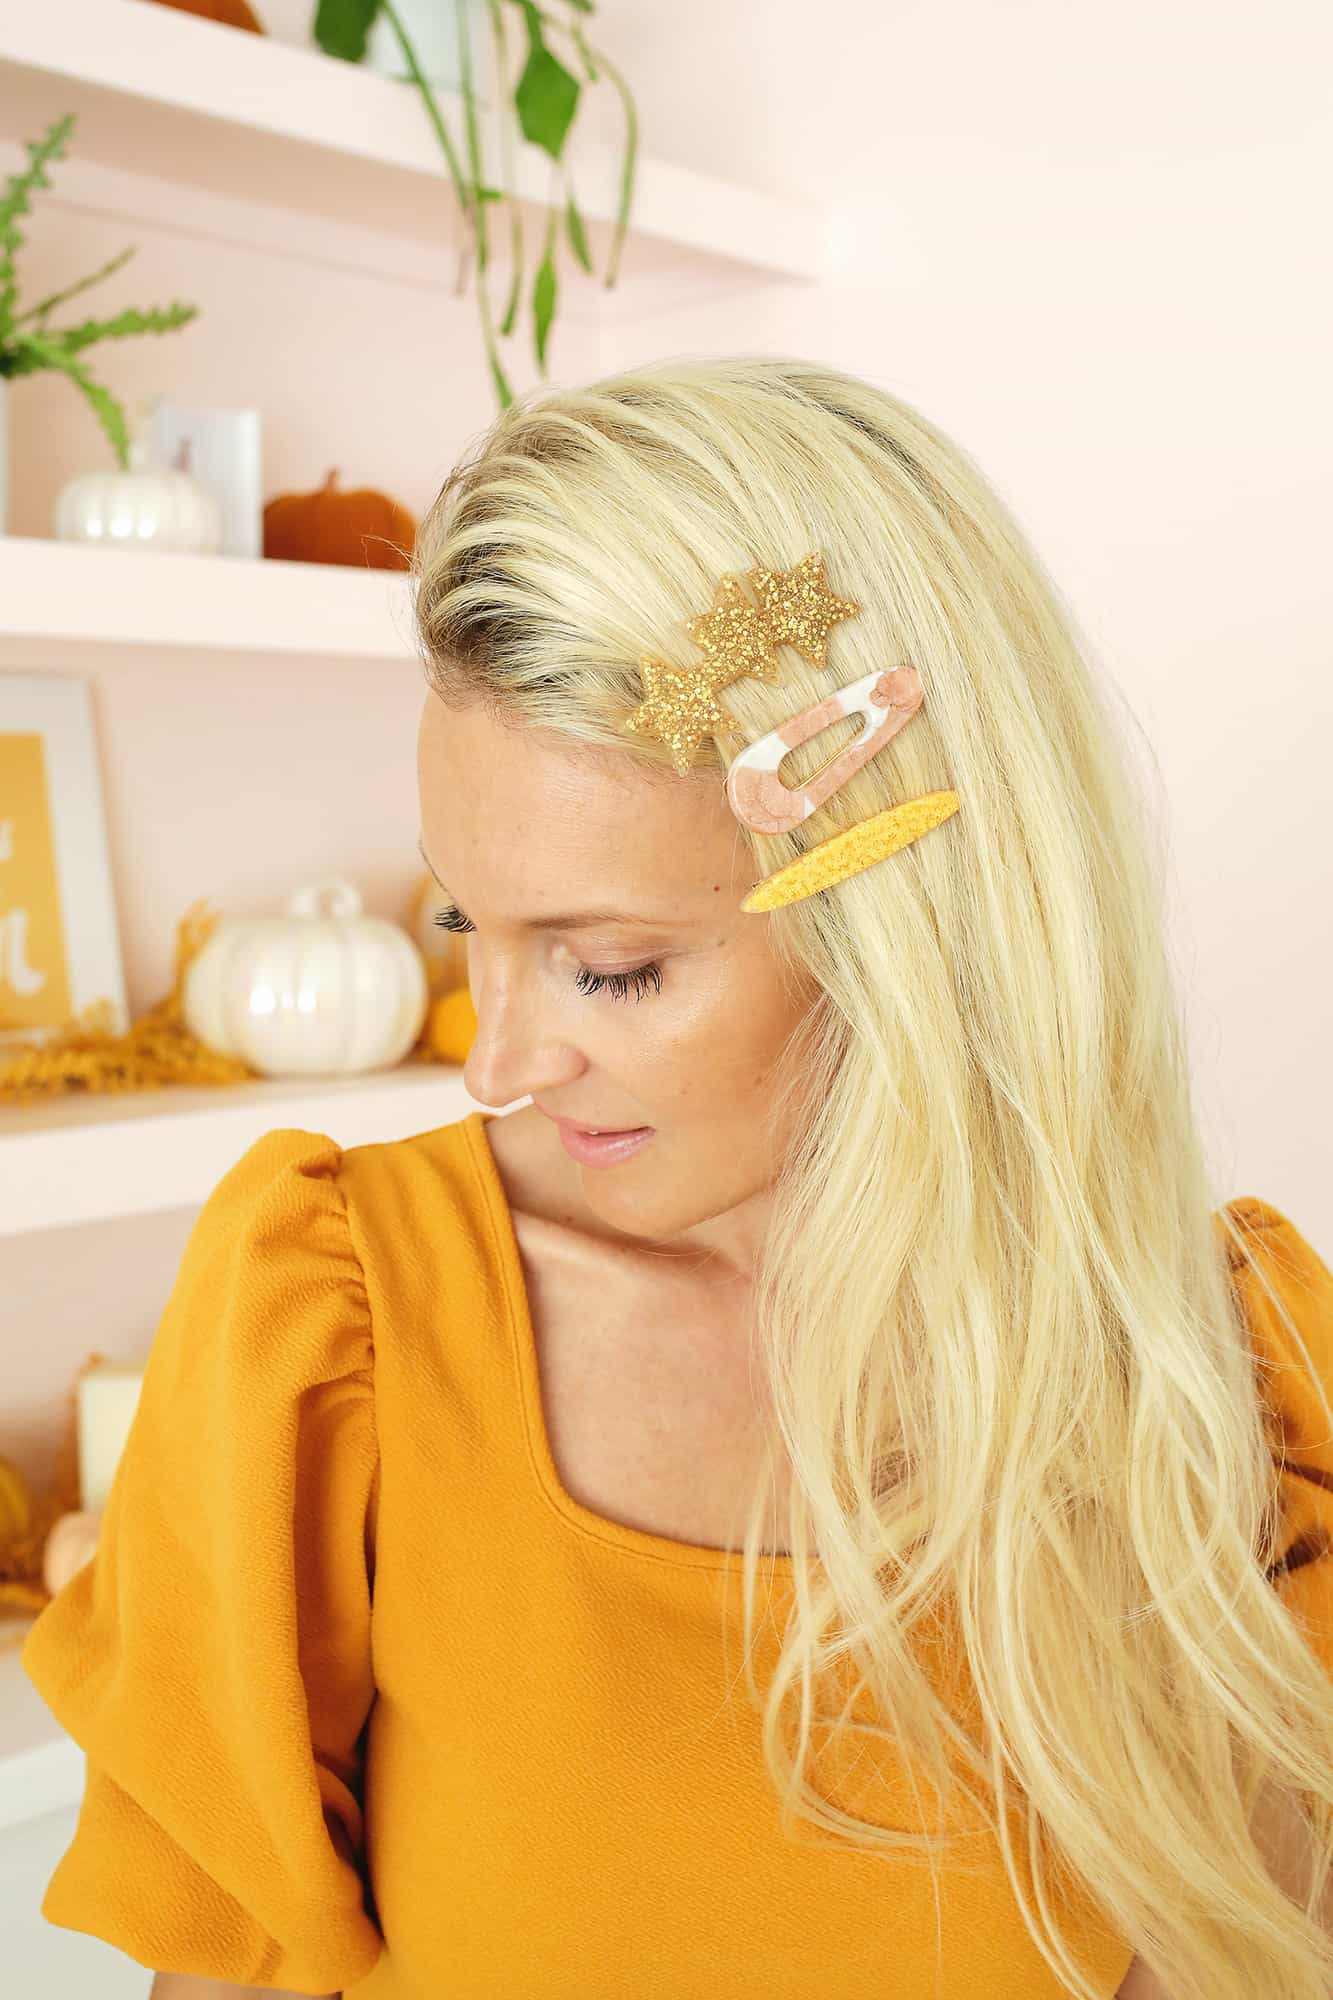 3 statement barrettes in curly hair